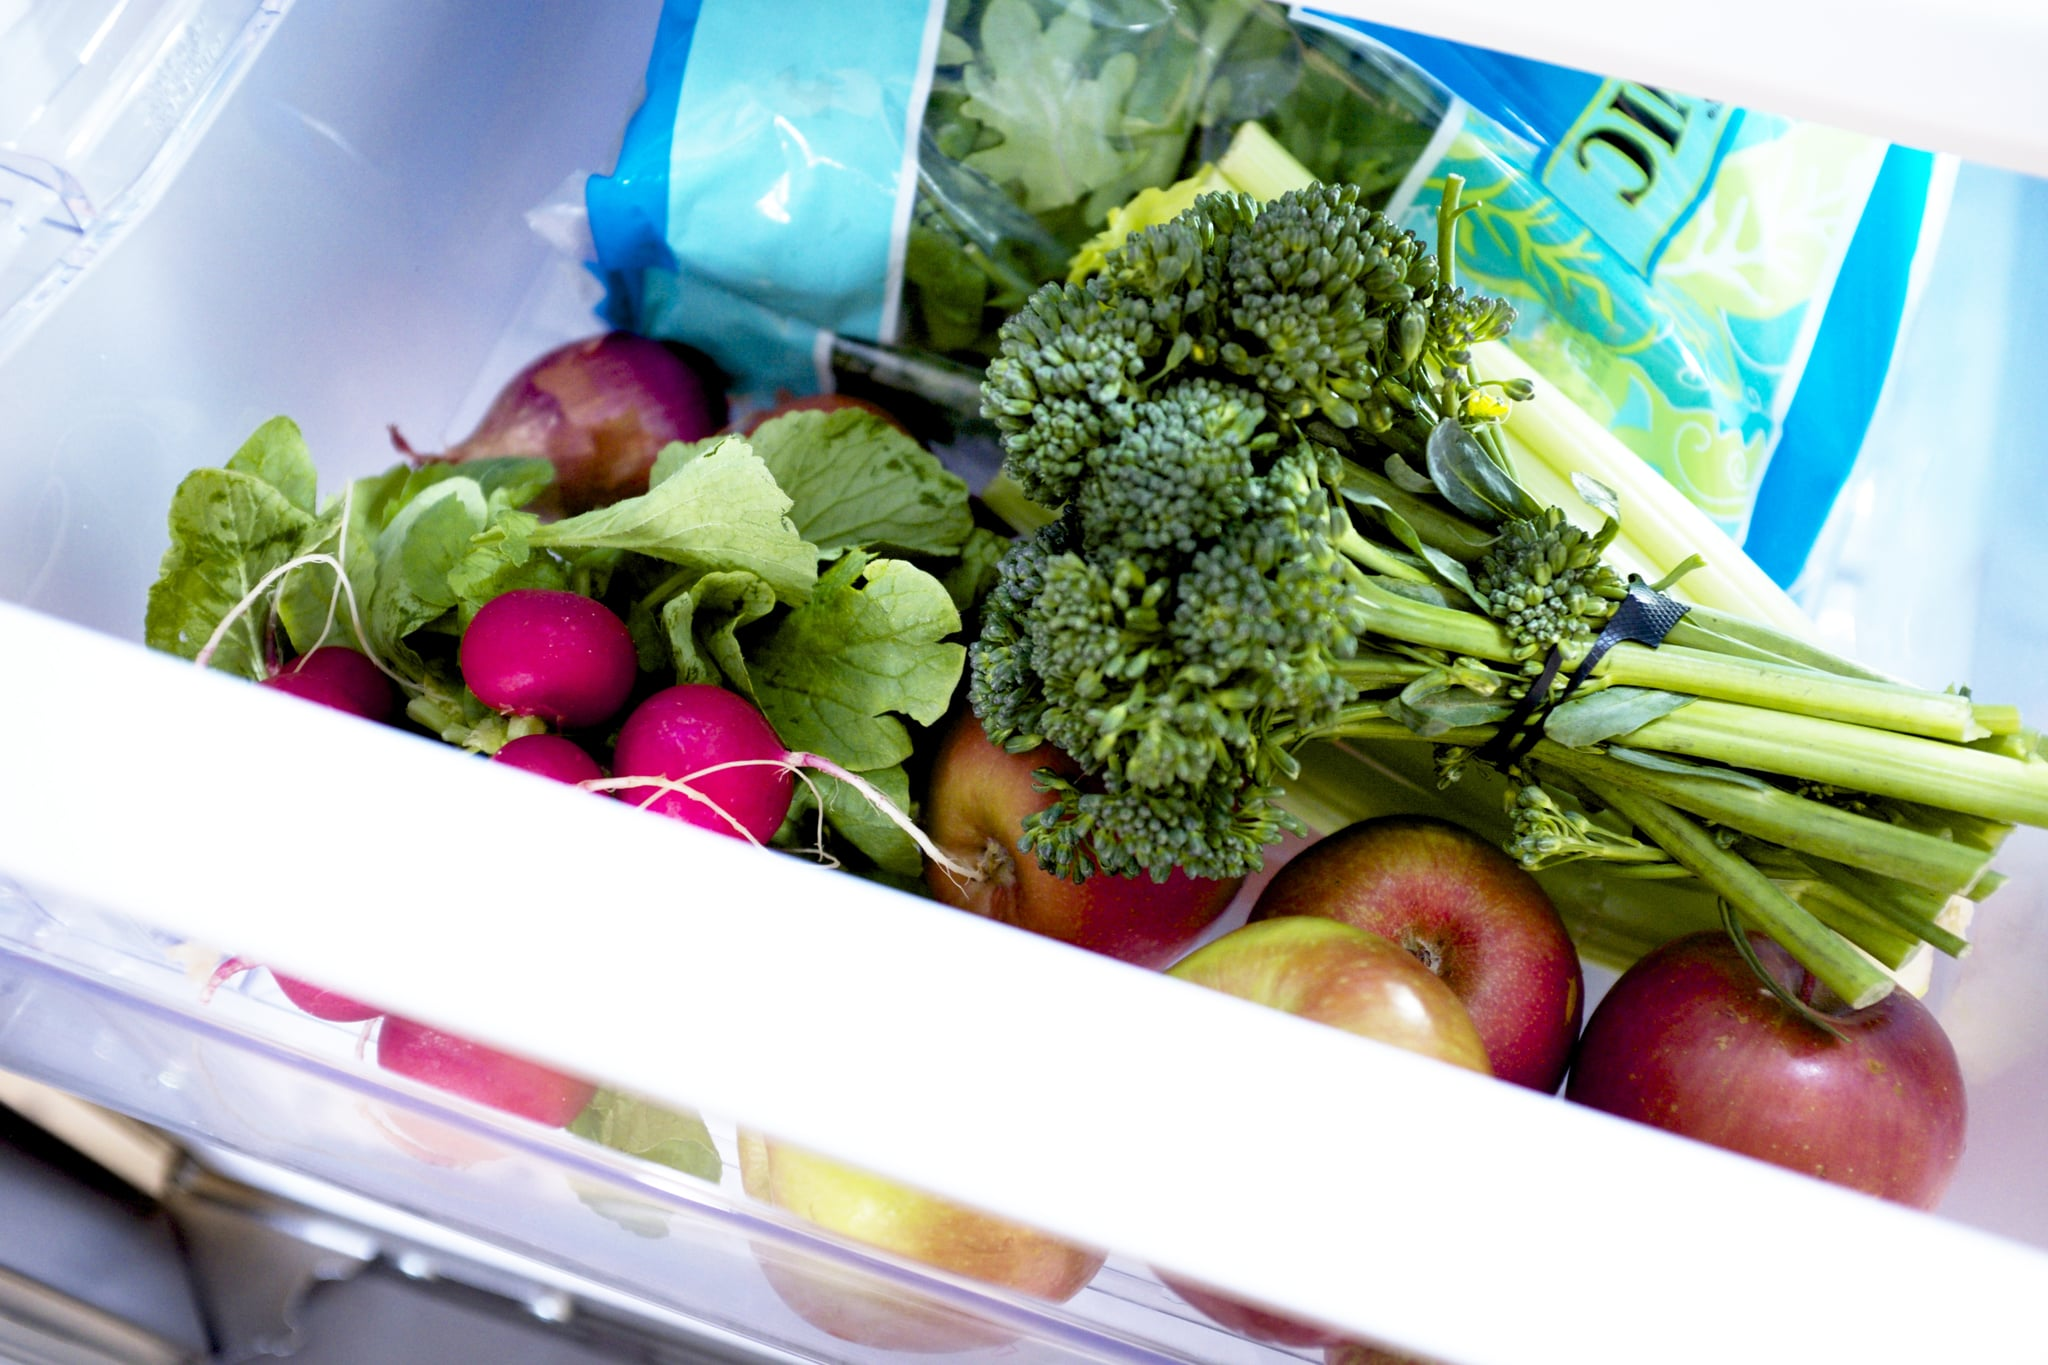 The best dryer for vegetables and fruits: how to choose